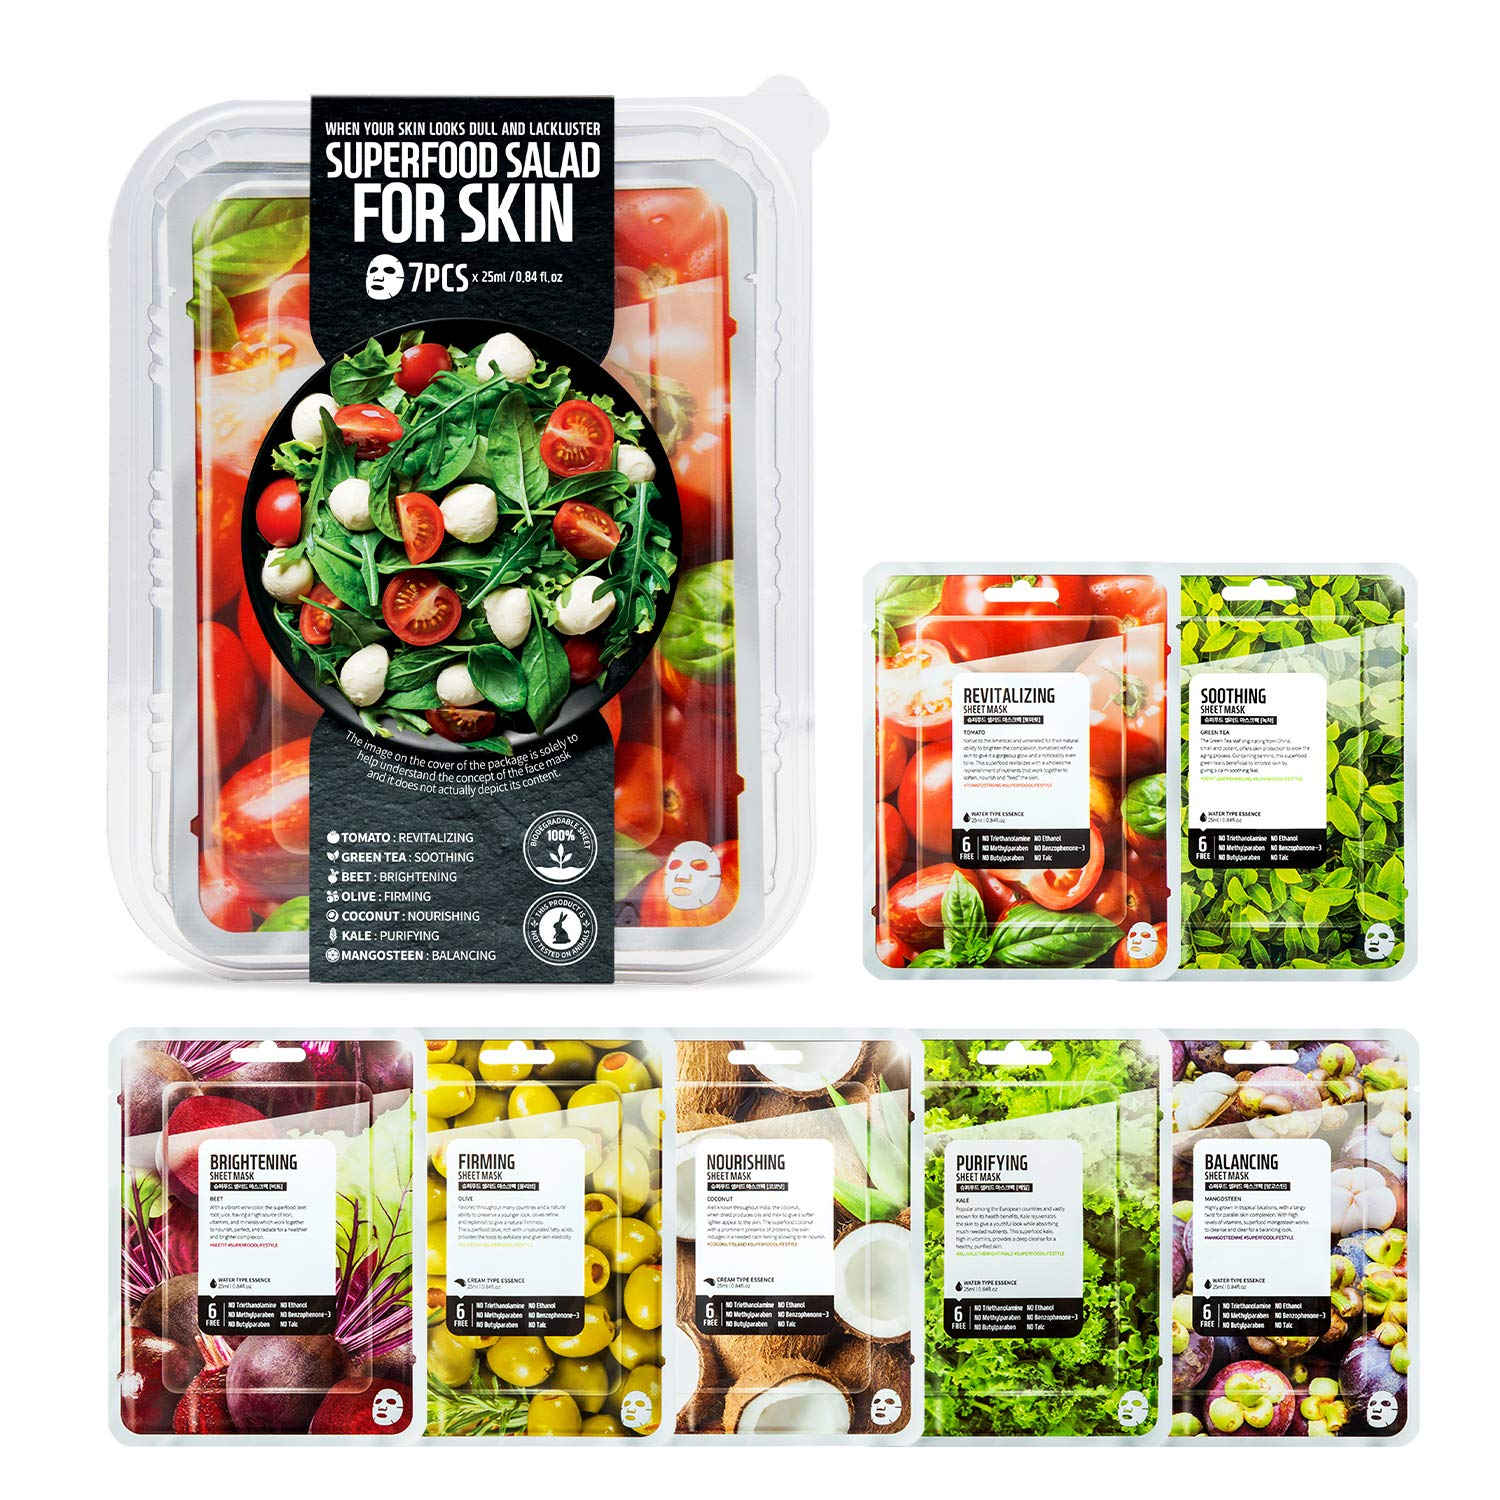 FARMSKIN Superfood Salad For Skin Beauty Facial Sheet Mask Salad Set (Pack of 7) Tomato